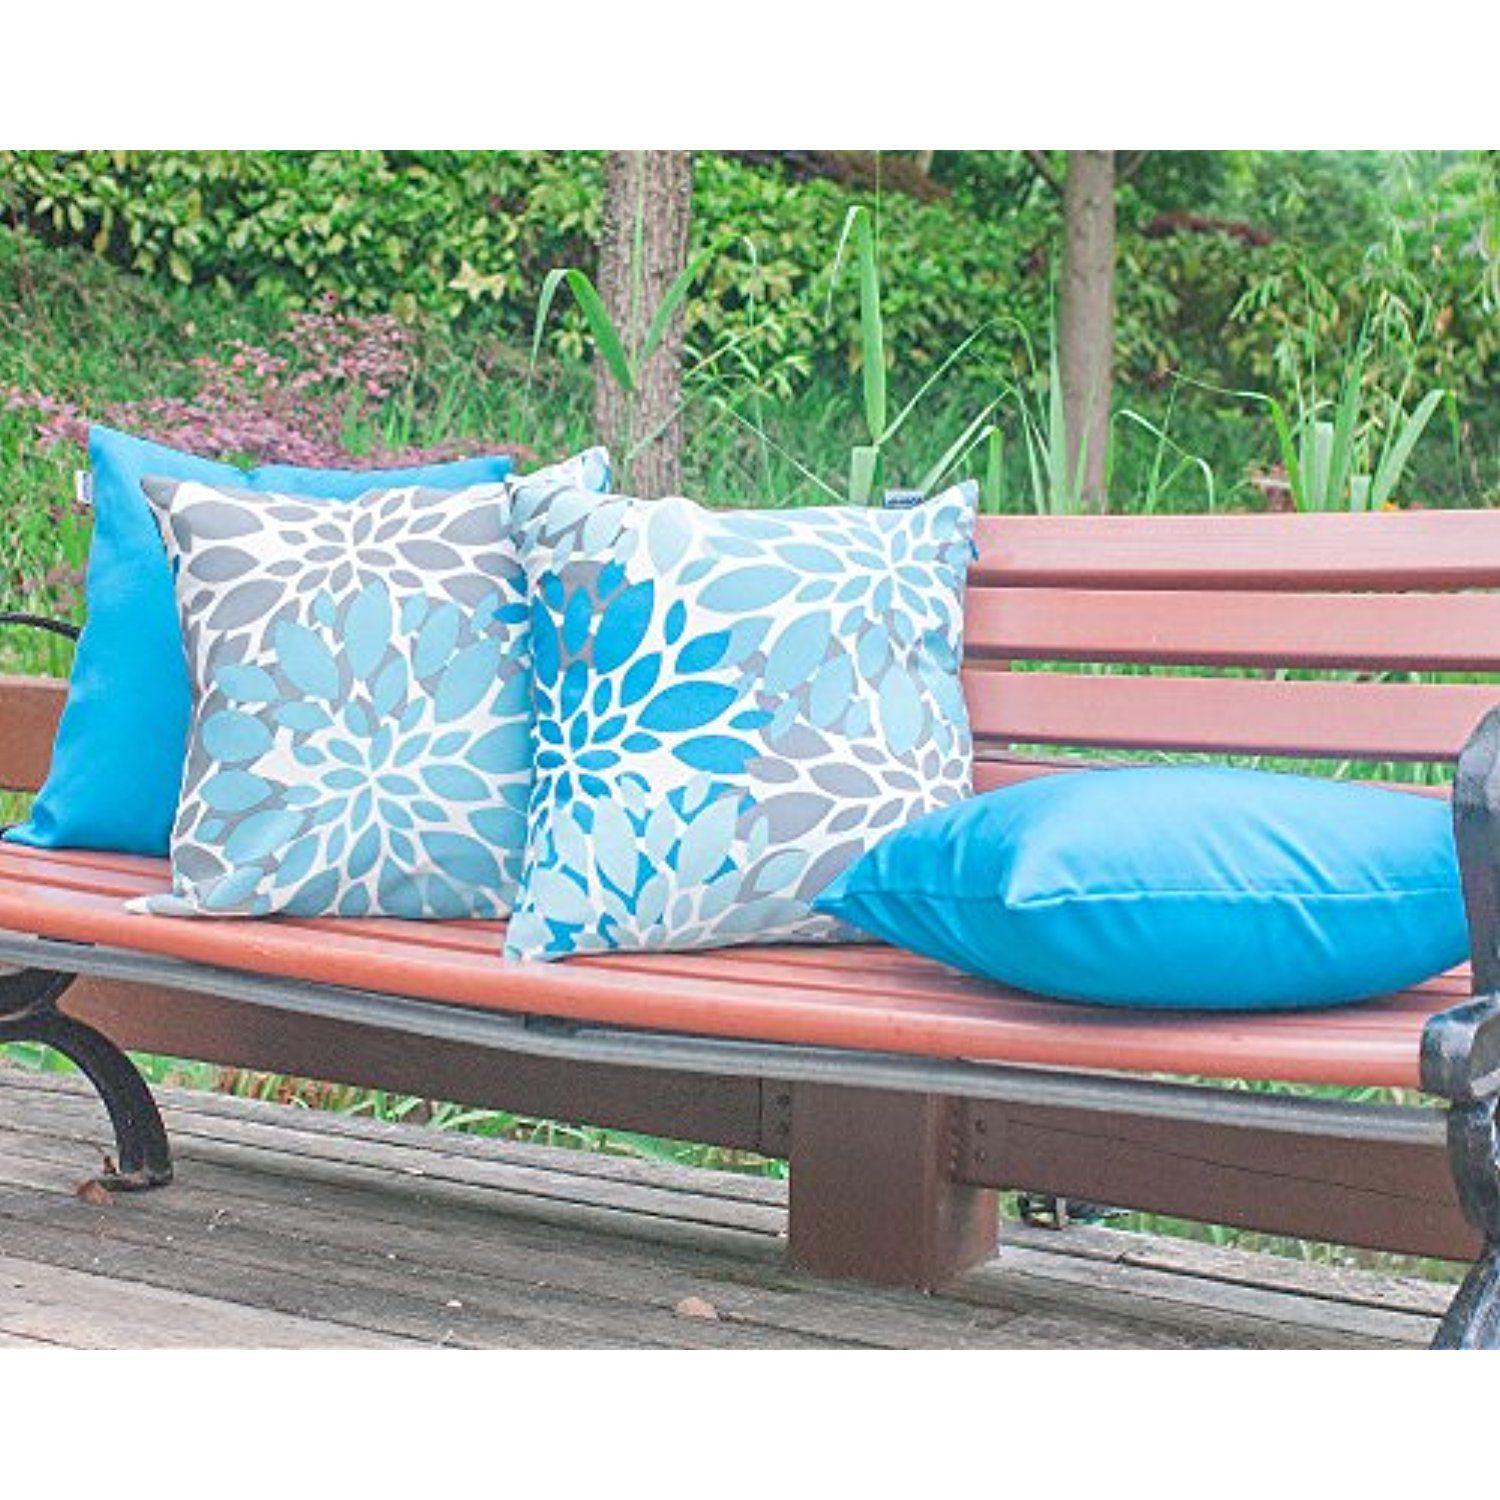 Vantextile 4pcs Furniture Decorate Pillow Cover 100 Polyester Outdoor Waterproof Cushion Set Invisible Zipper Safe And Comfortable Cushio Waterproof Cushions Outdoor Christmas Home